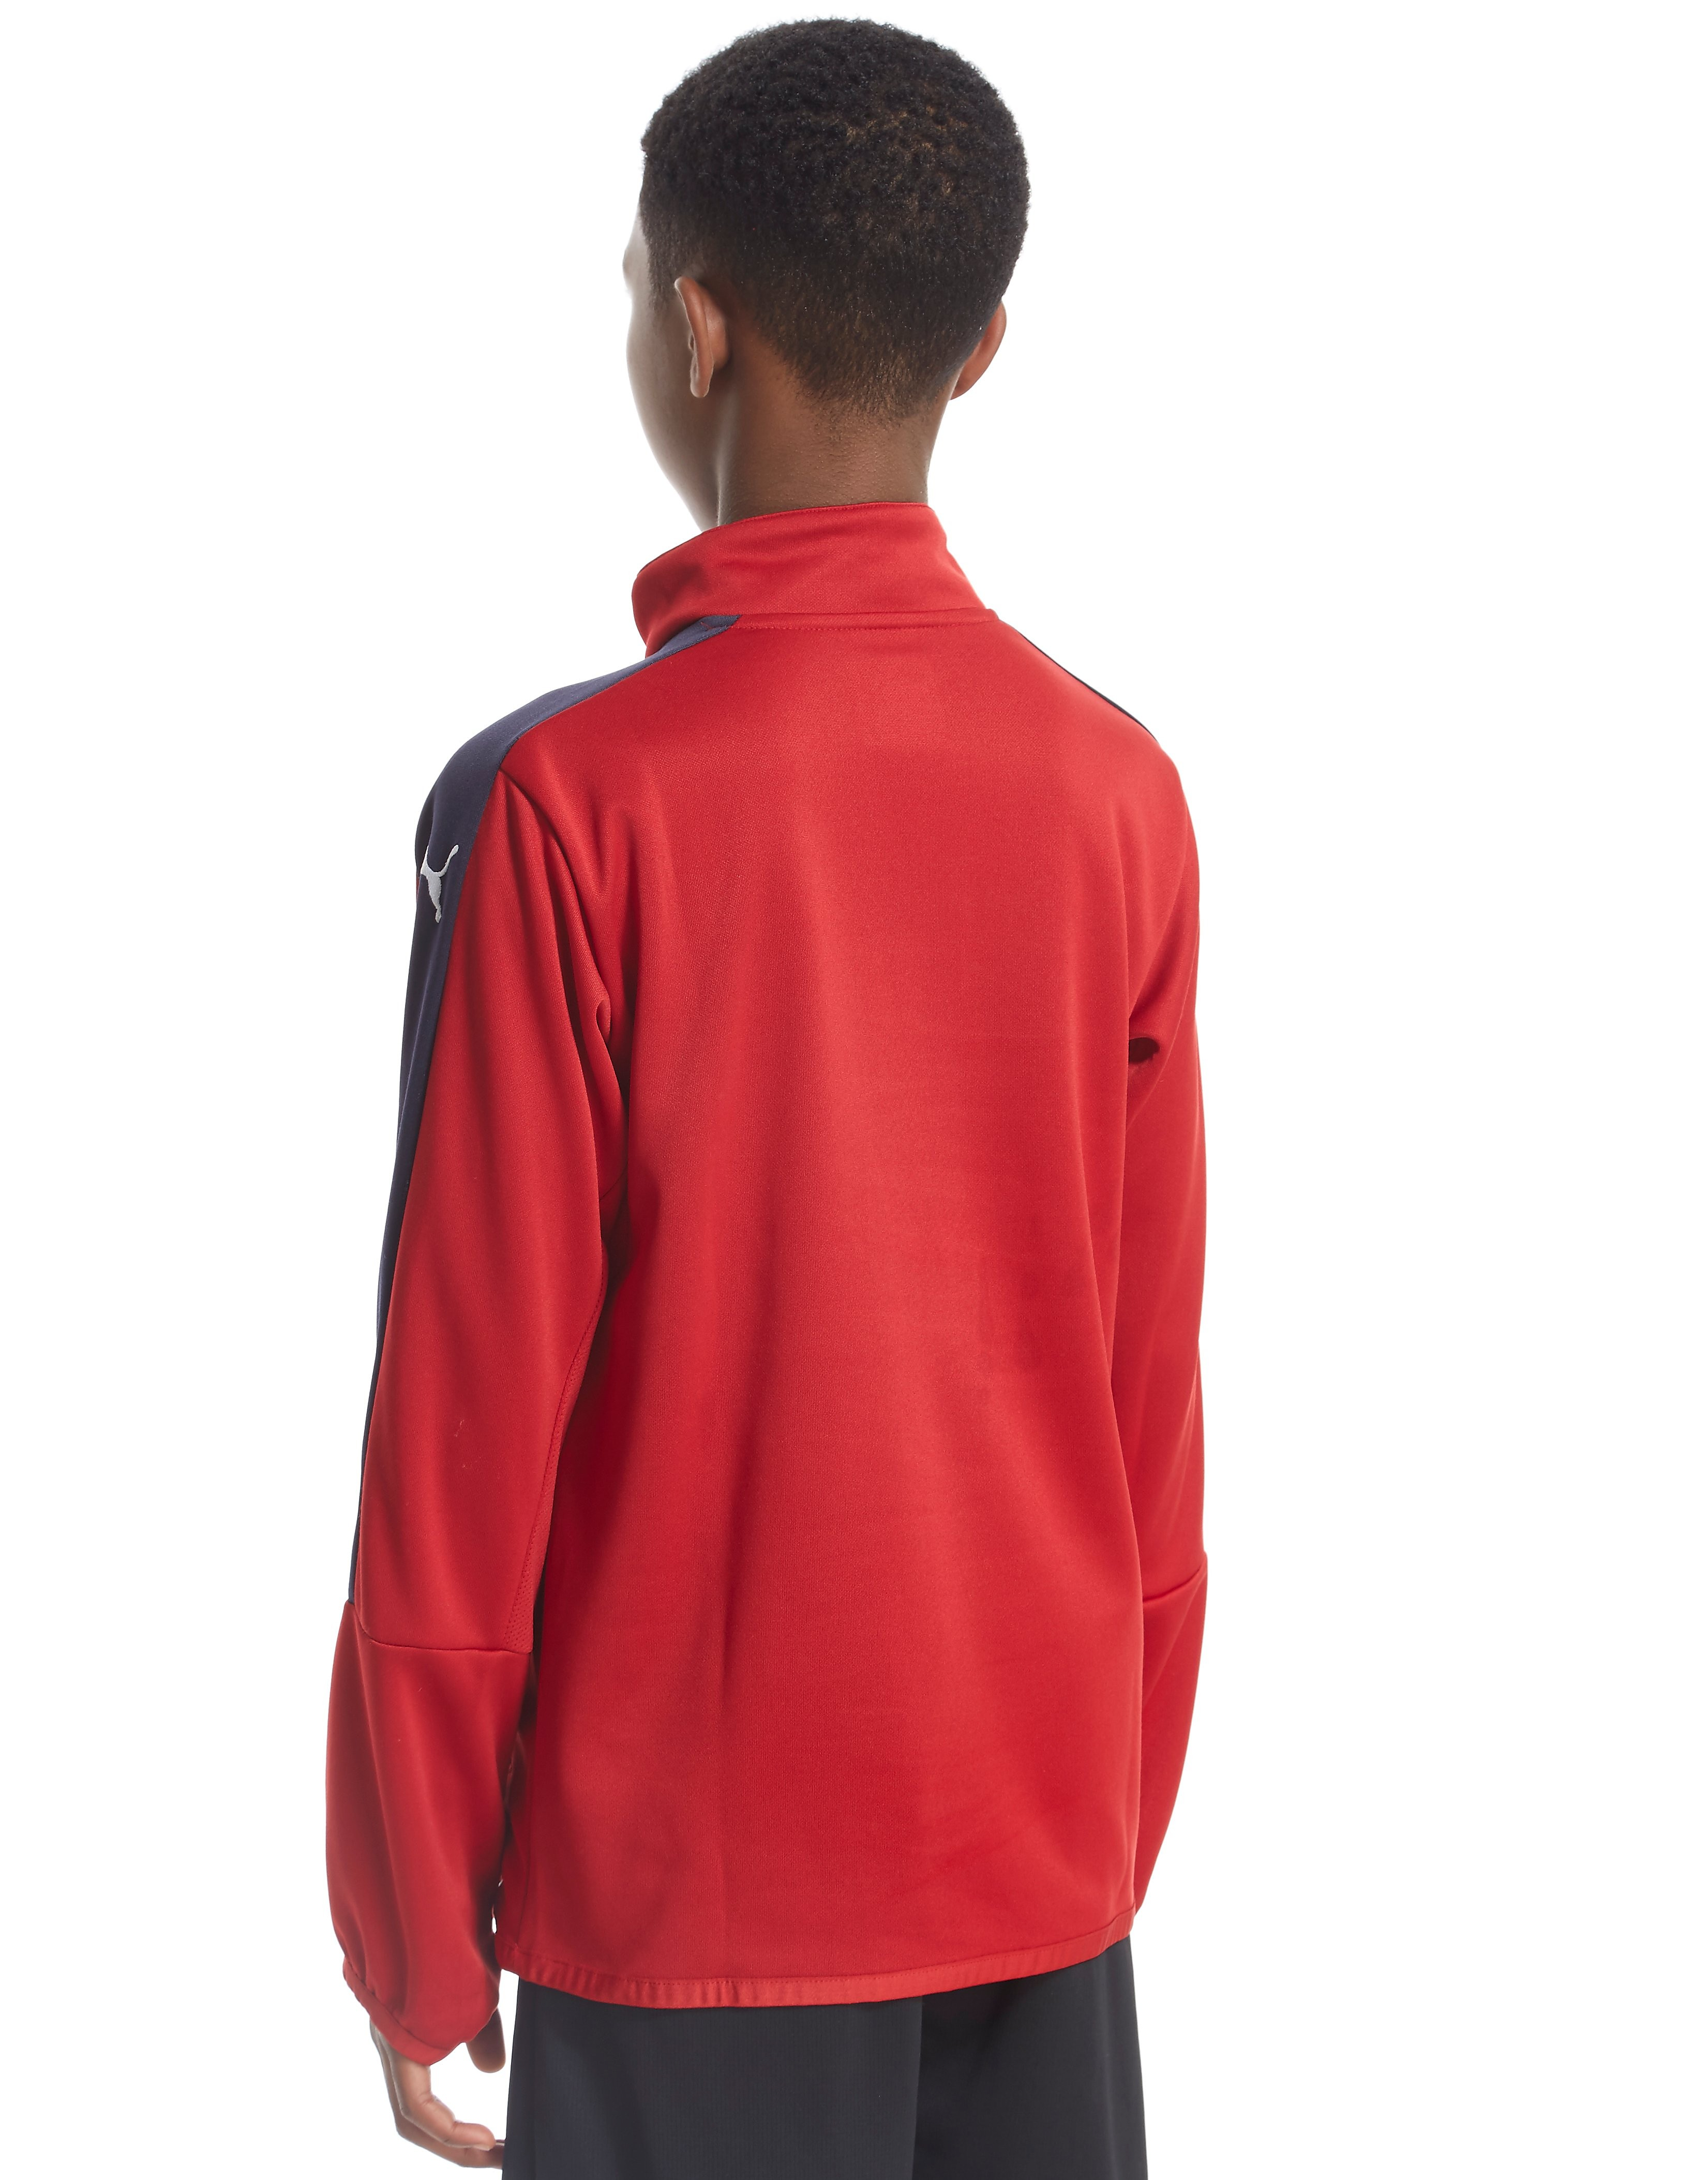 PUMA Rangers FC 2016/17 Quarter Zip Training Top Junior